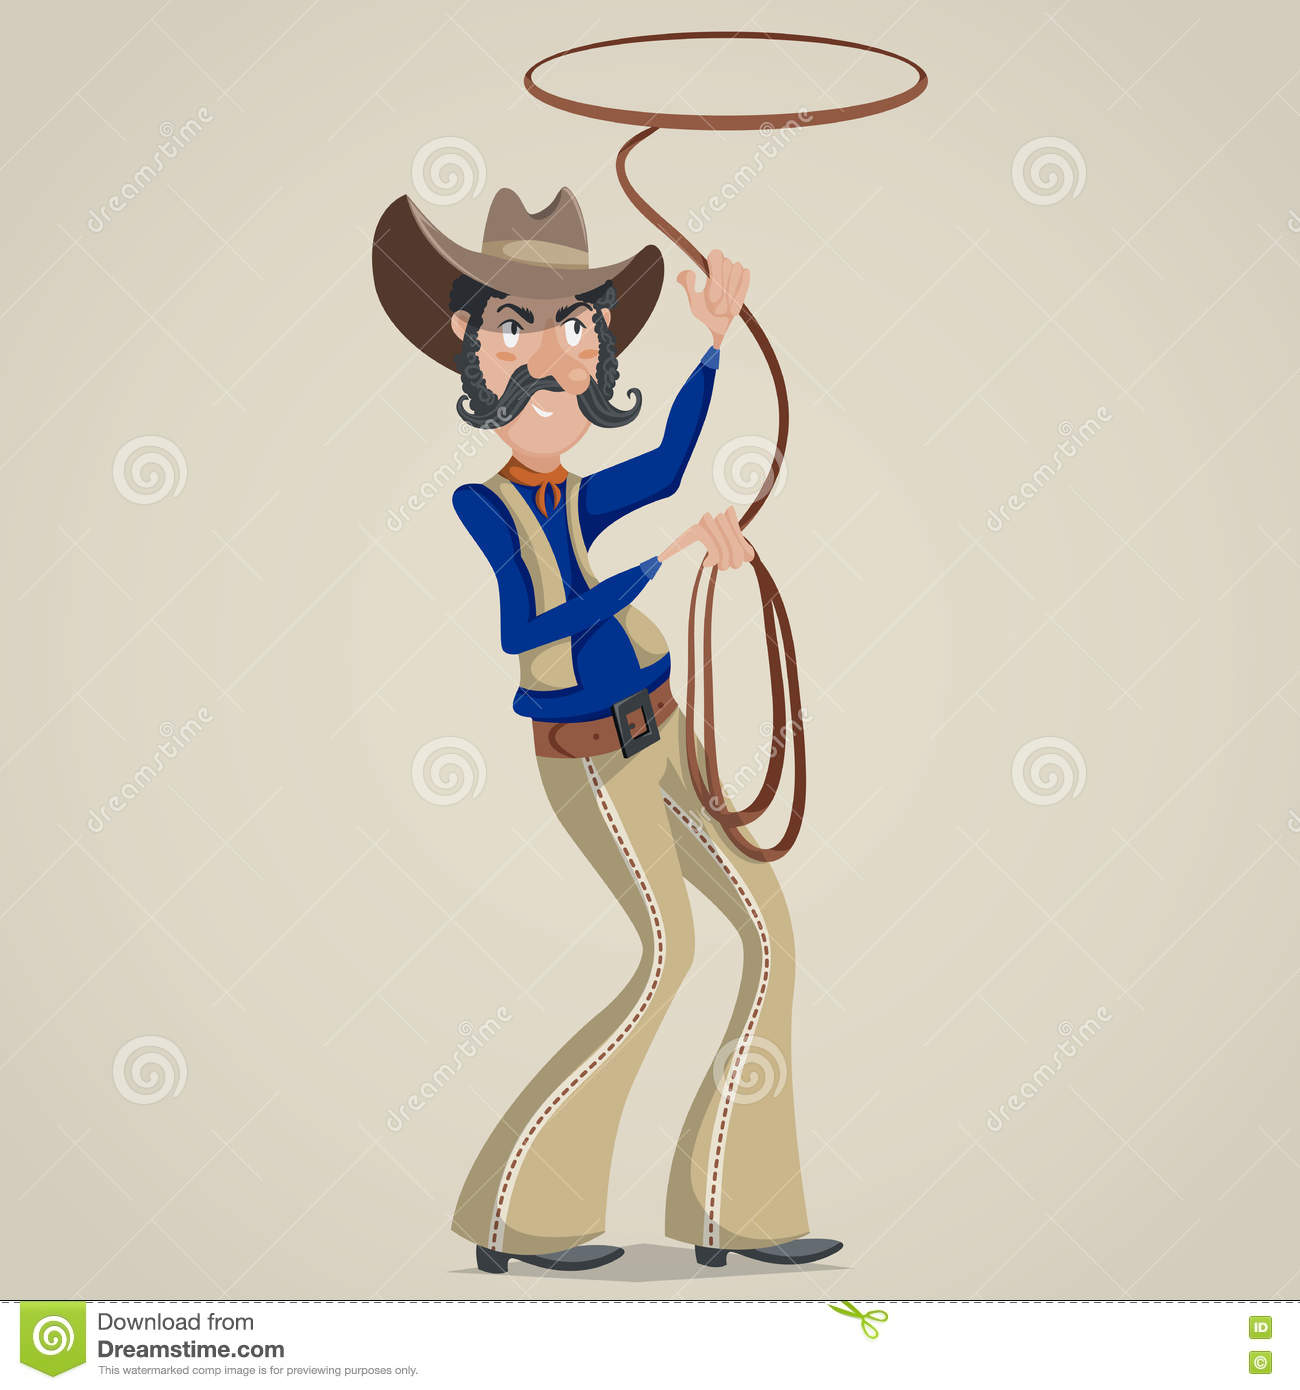 Cowboy with lasso. Funny cartoon character.